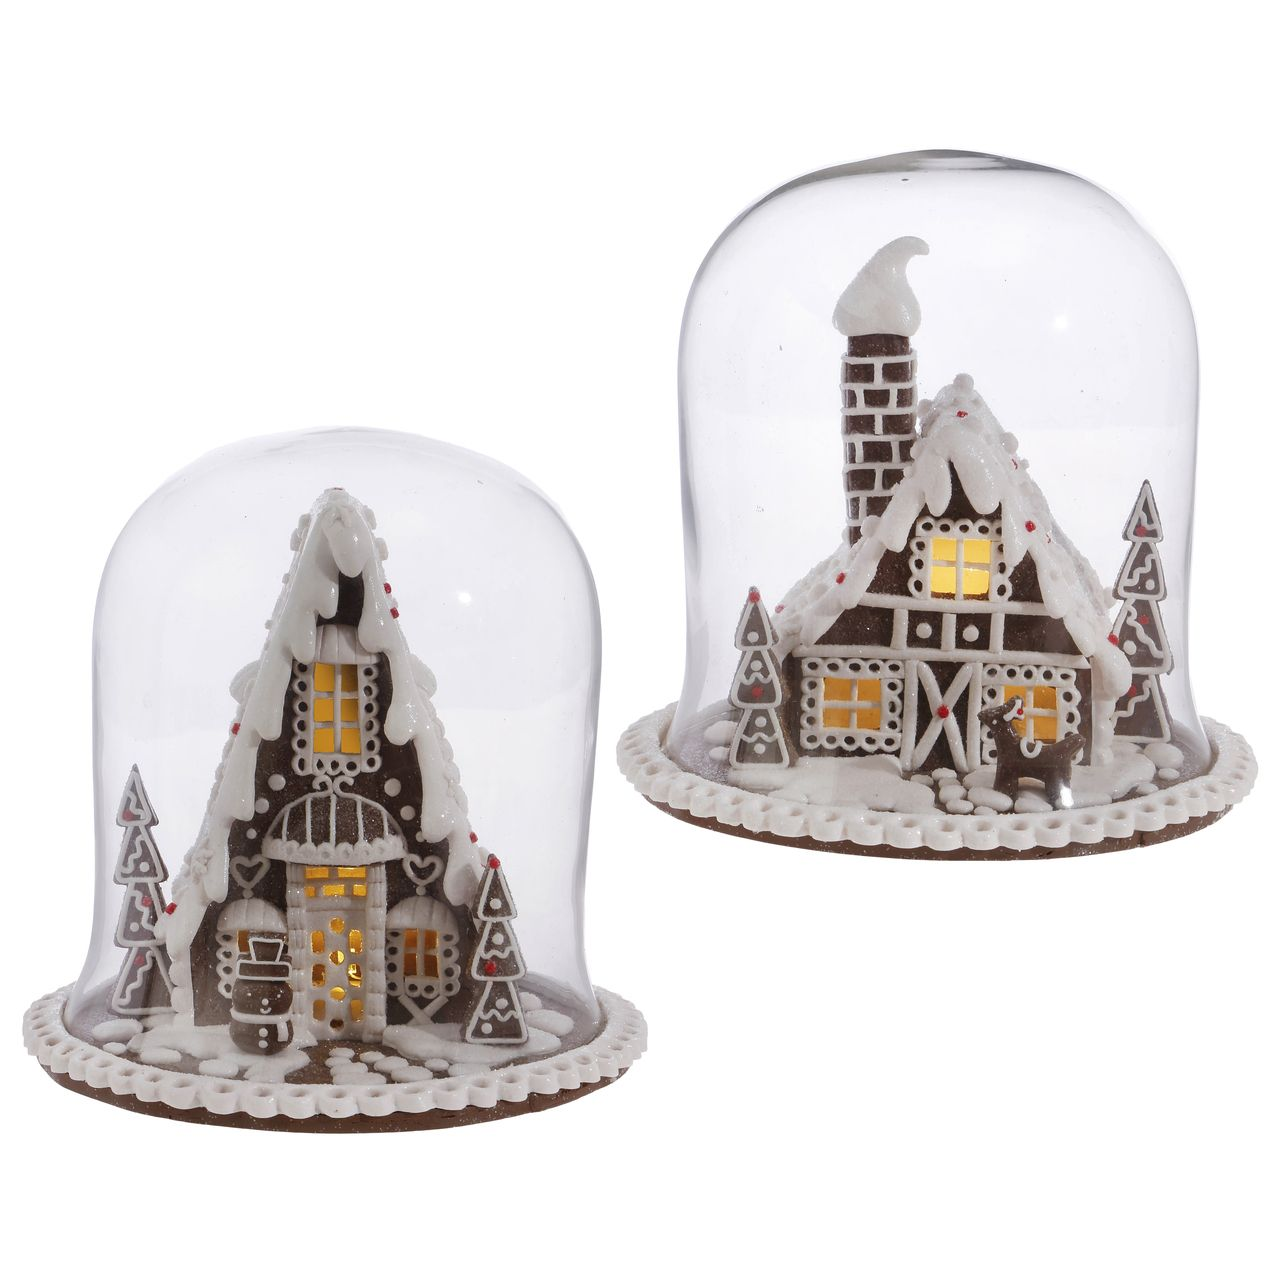 Large Selection Of Raz Imports Decorations Ornaments And: Gingerbread House Under Dome. Christmas Table Top